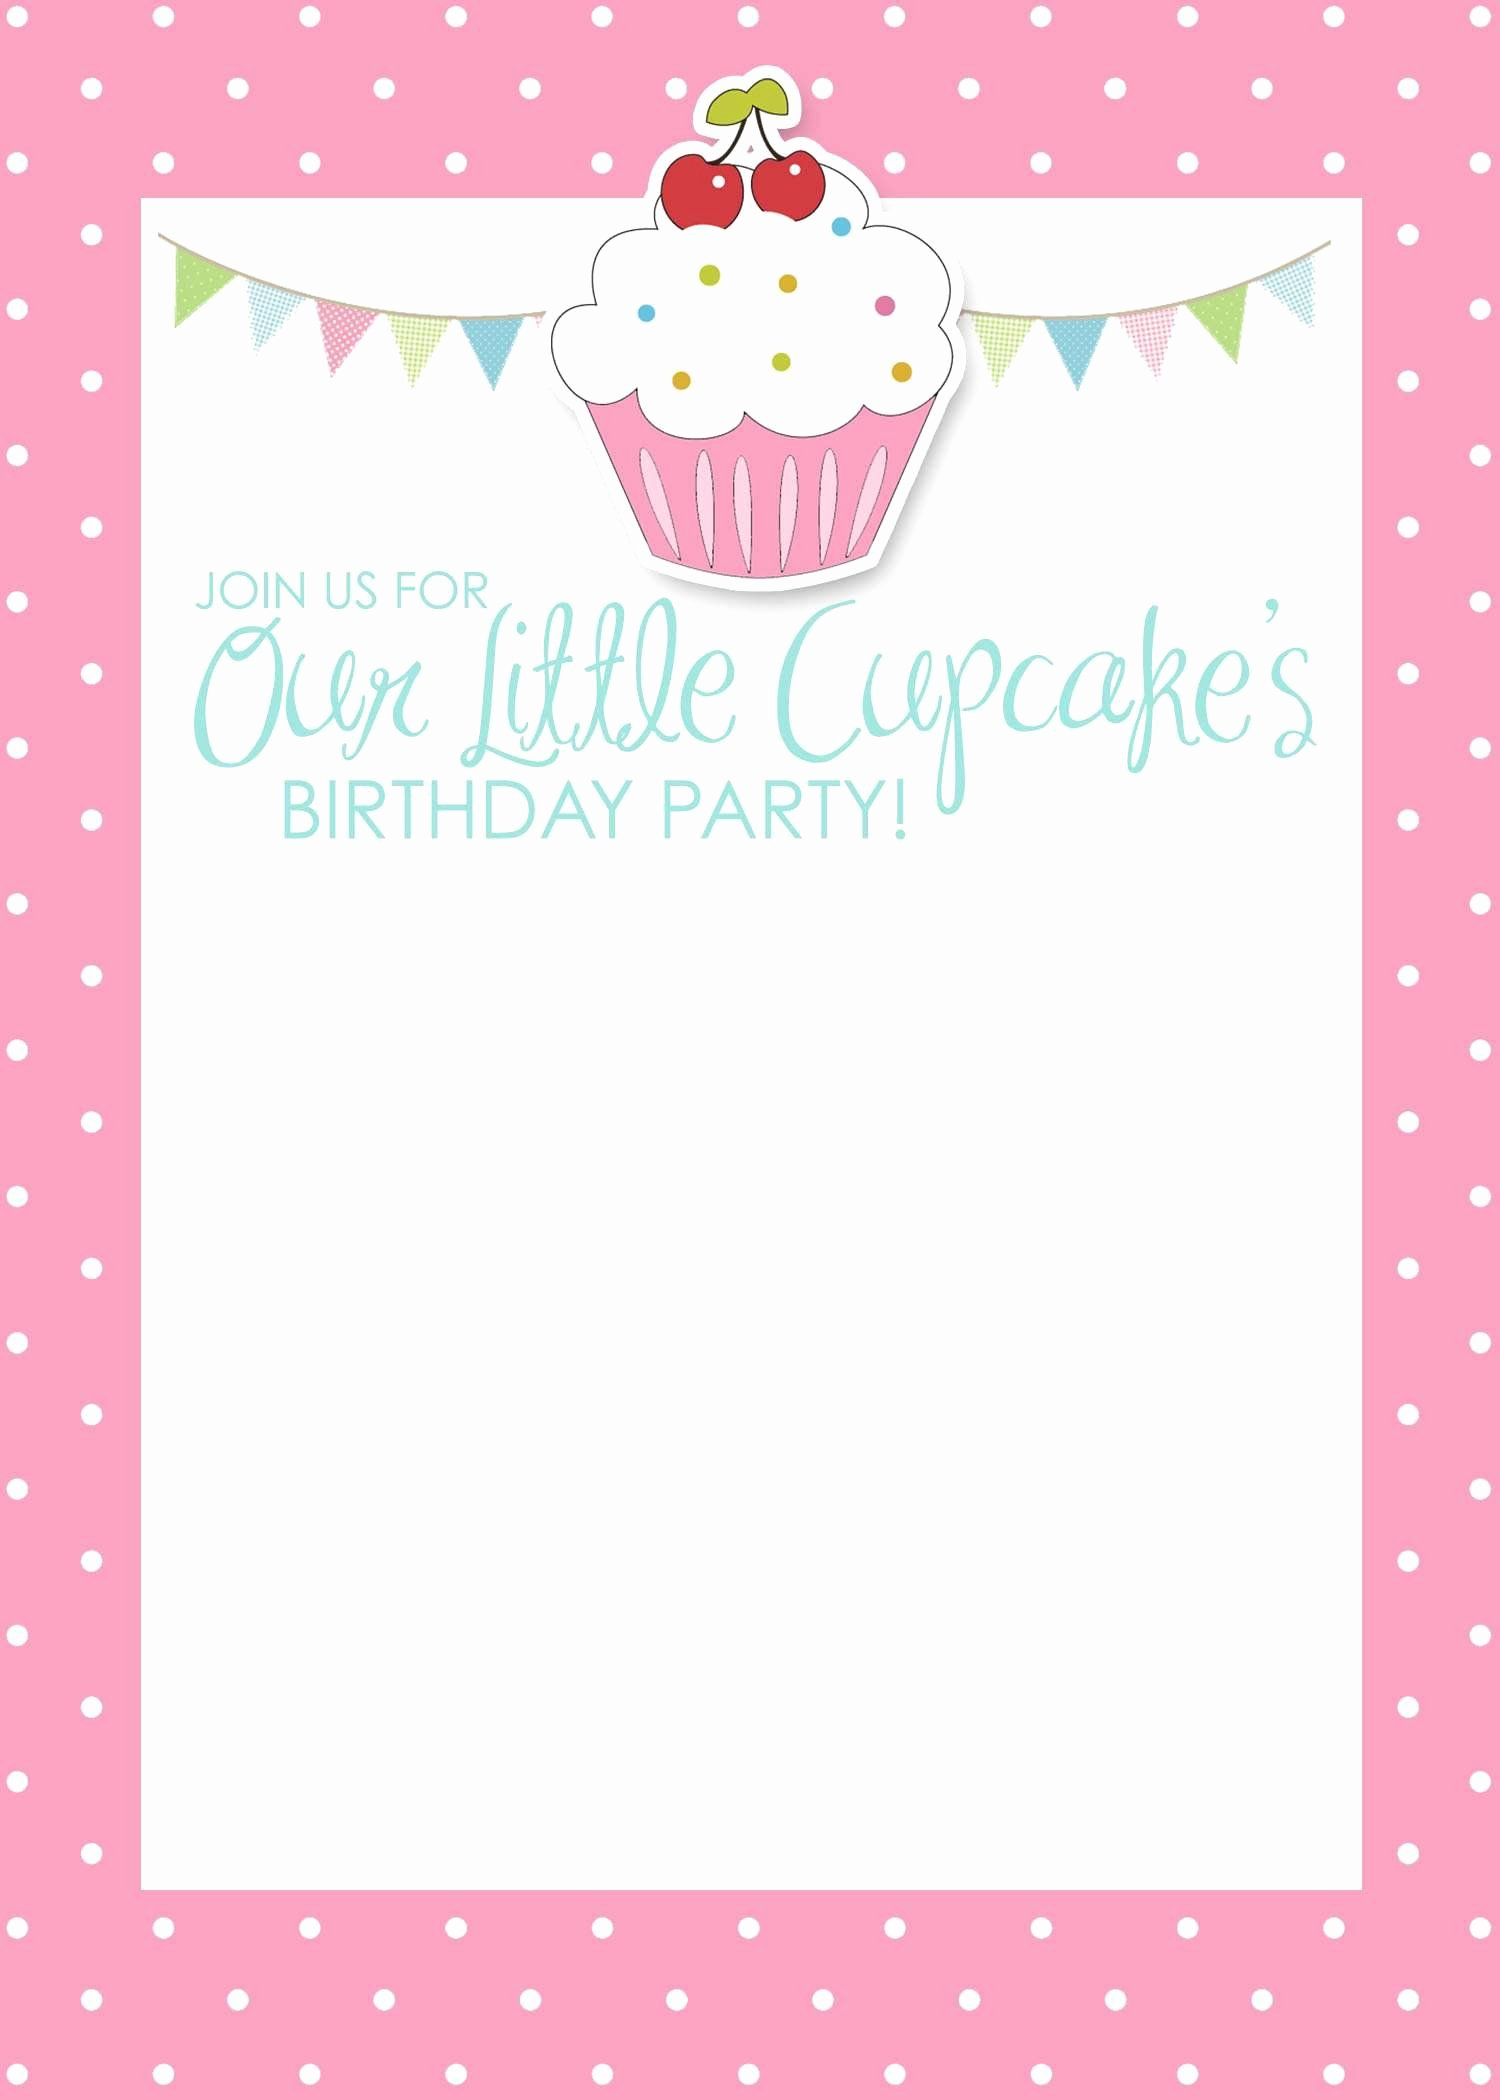 Birthday Card Template Free Fresh Birthday Invitation Card Template Free